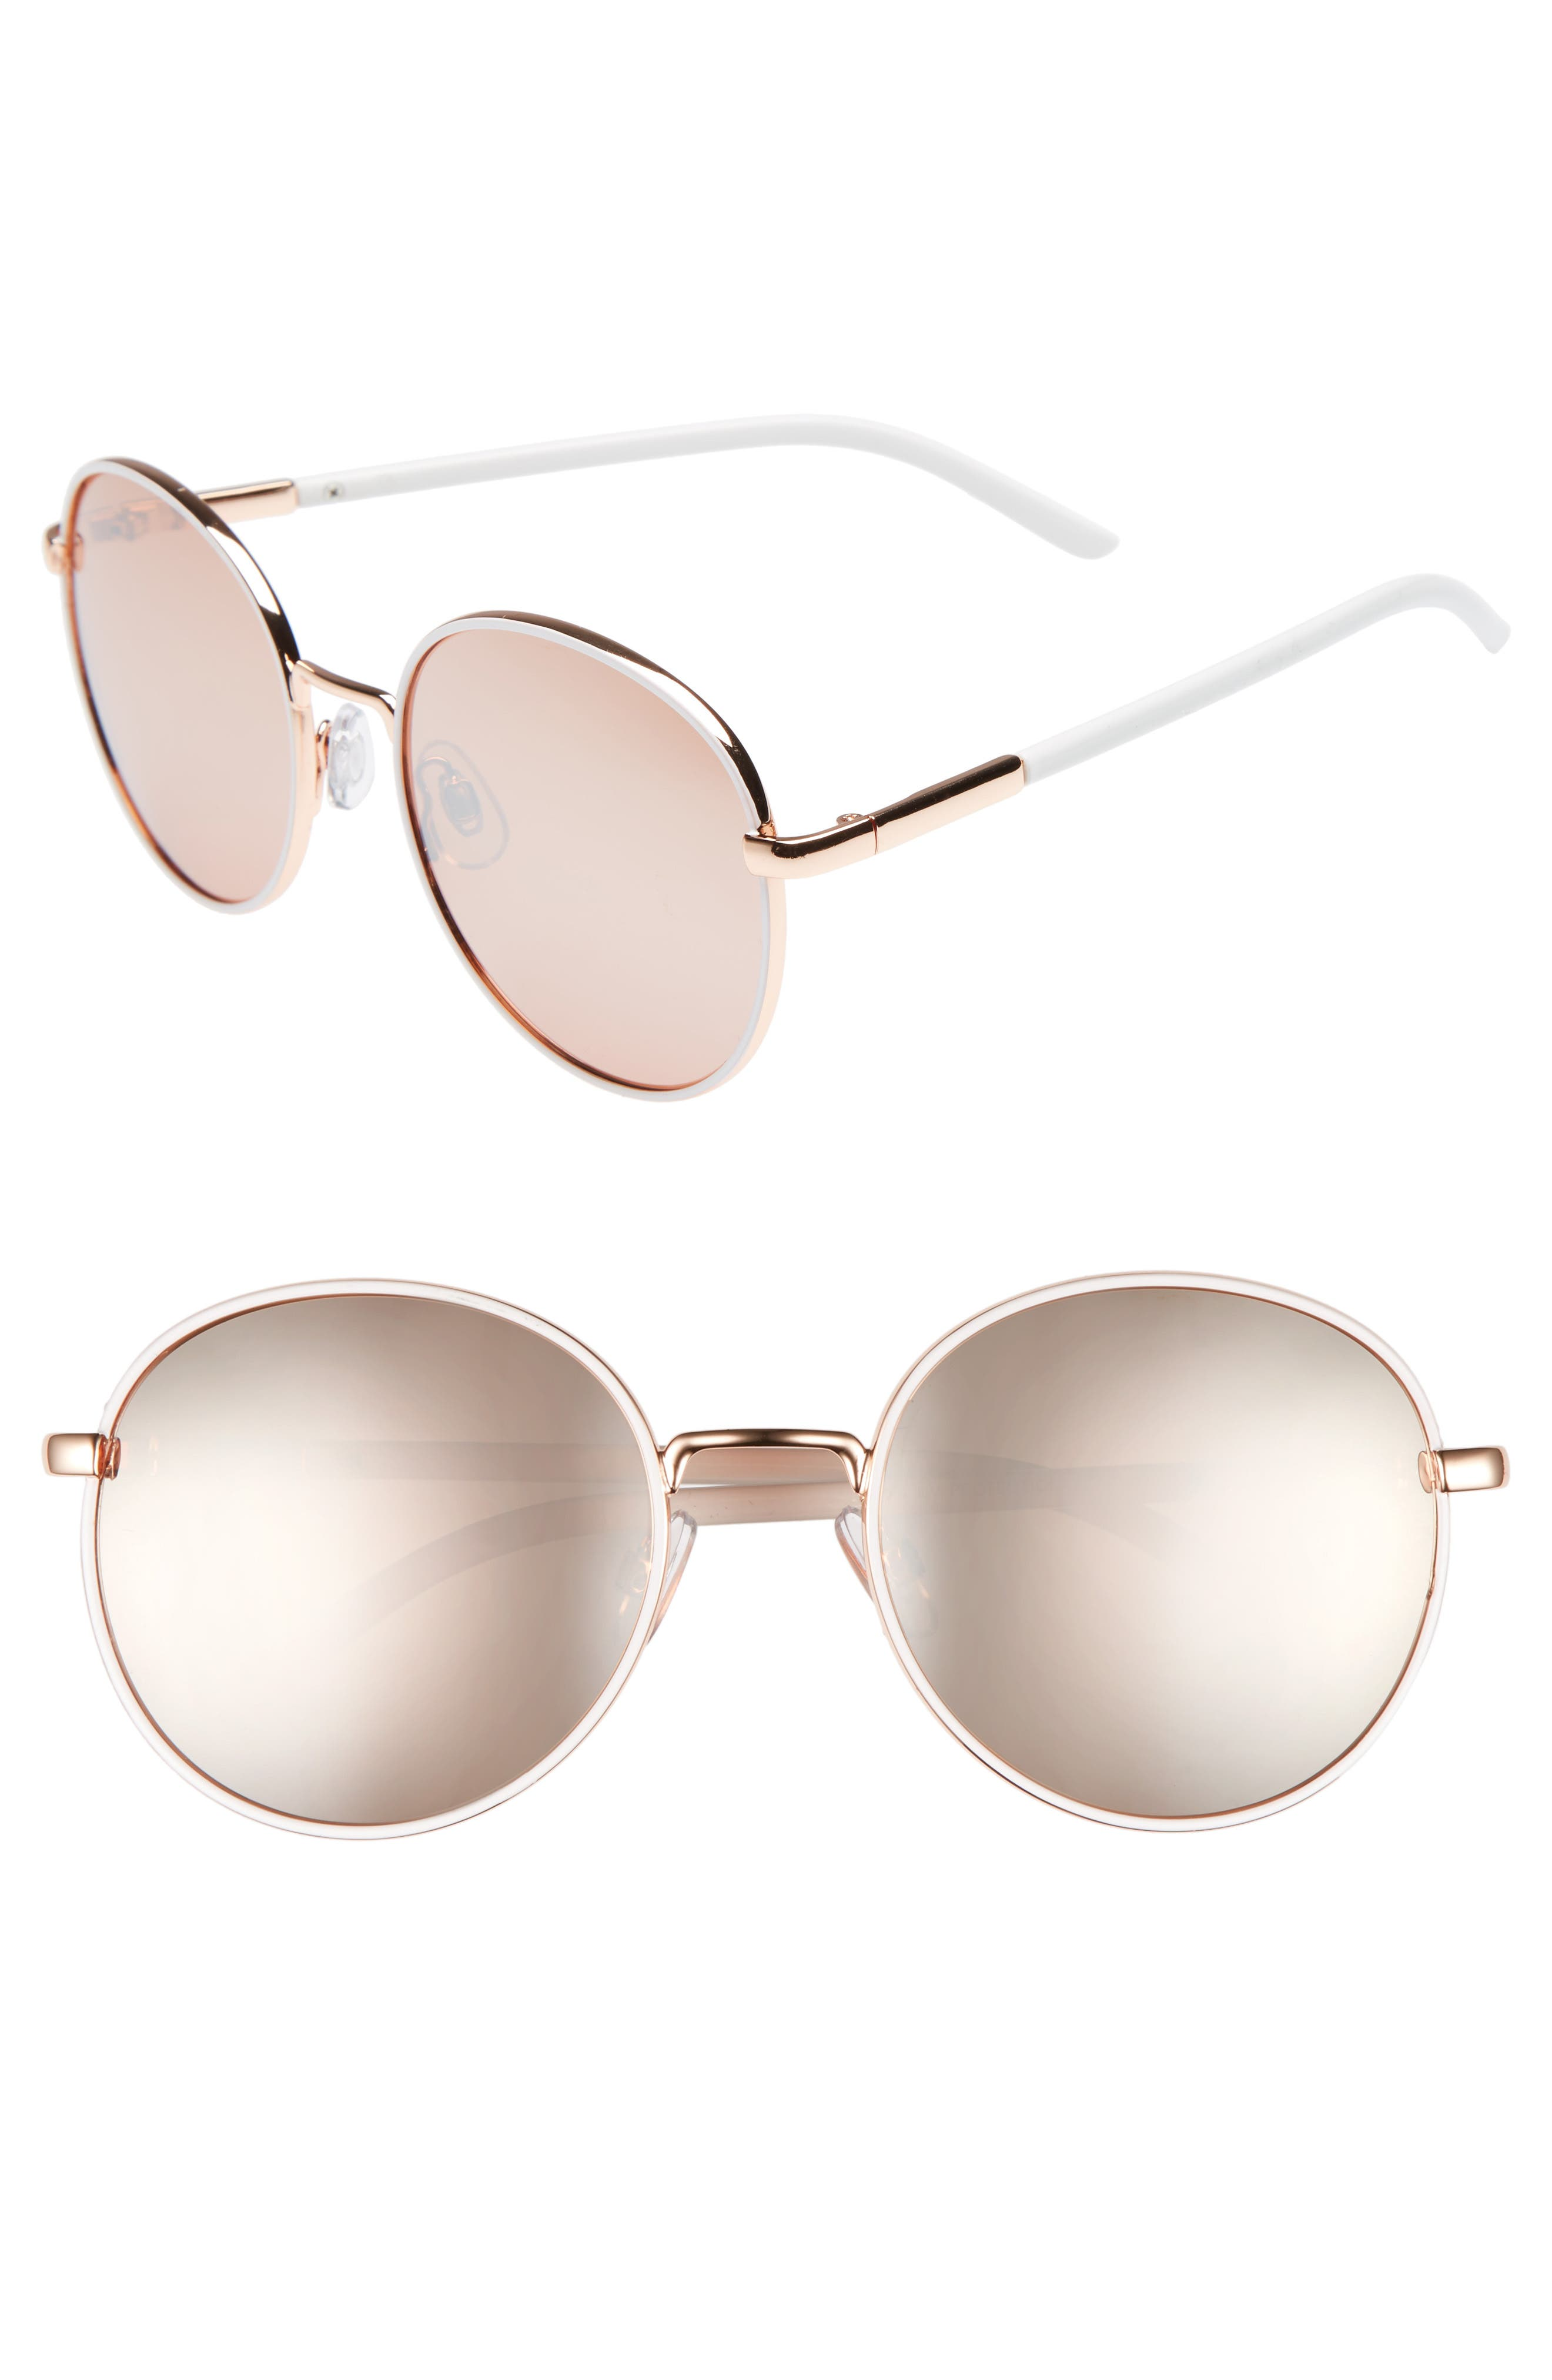 55mm Round Sunglasses, Main, color, WHITE/ ROSE GOLD